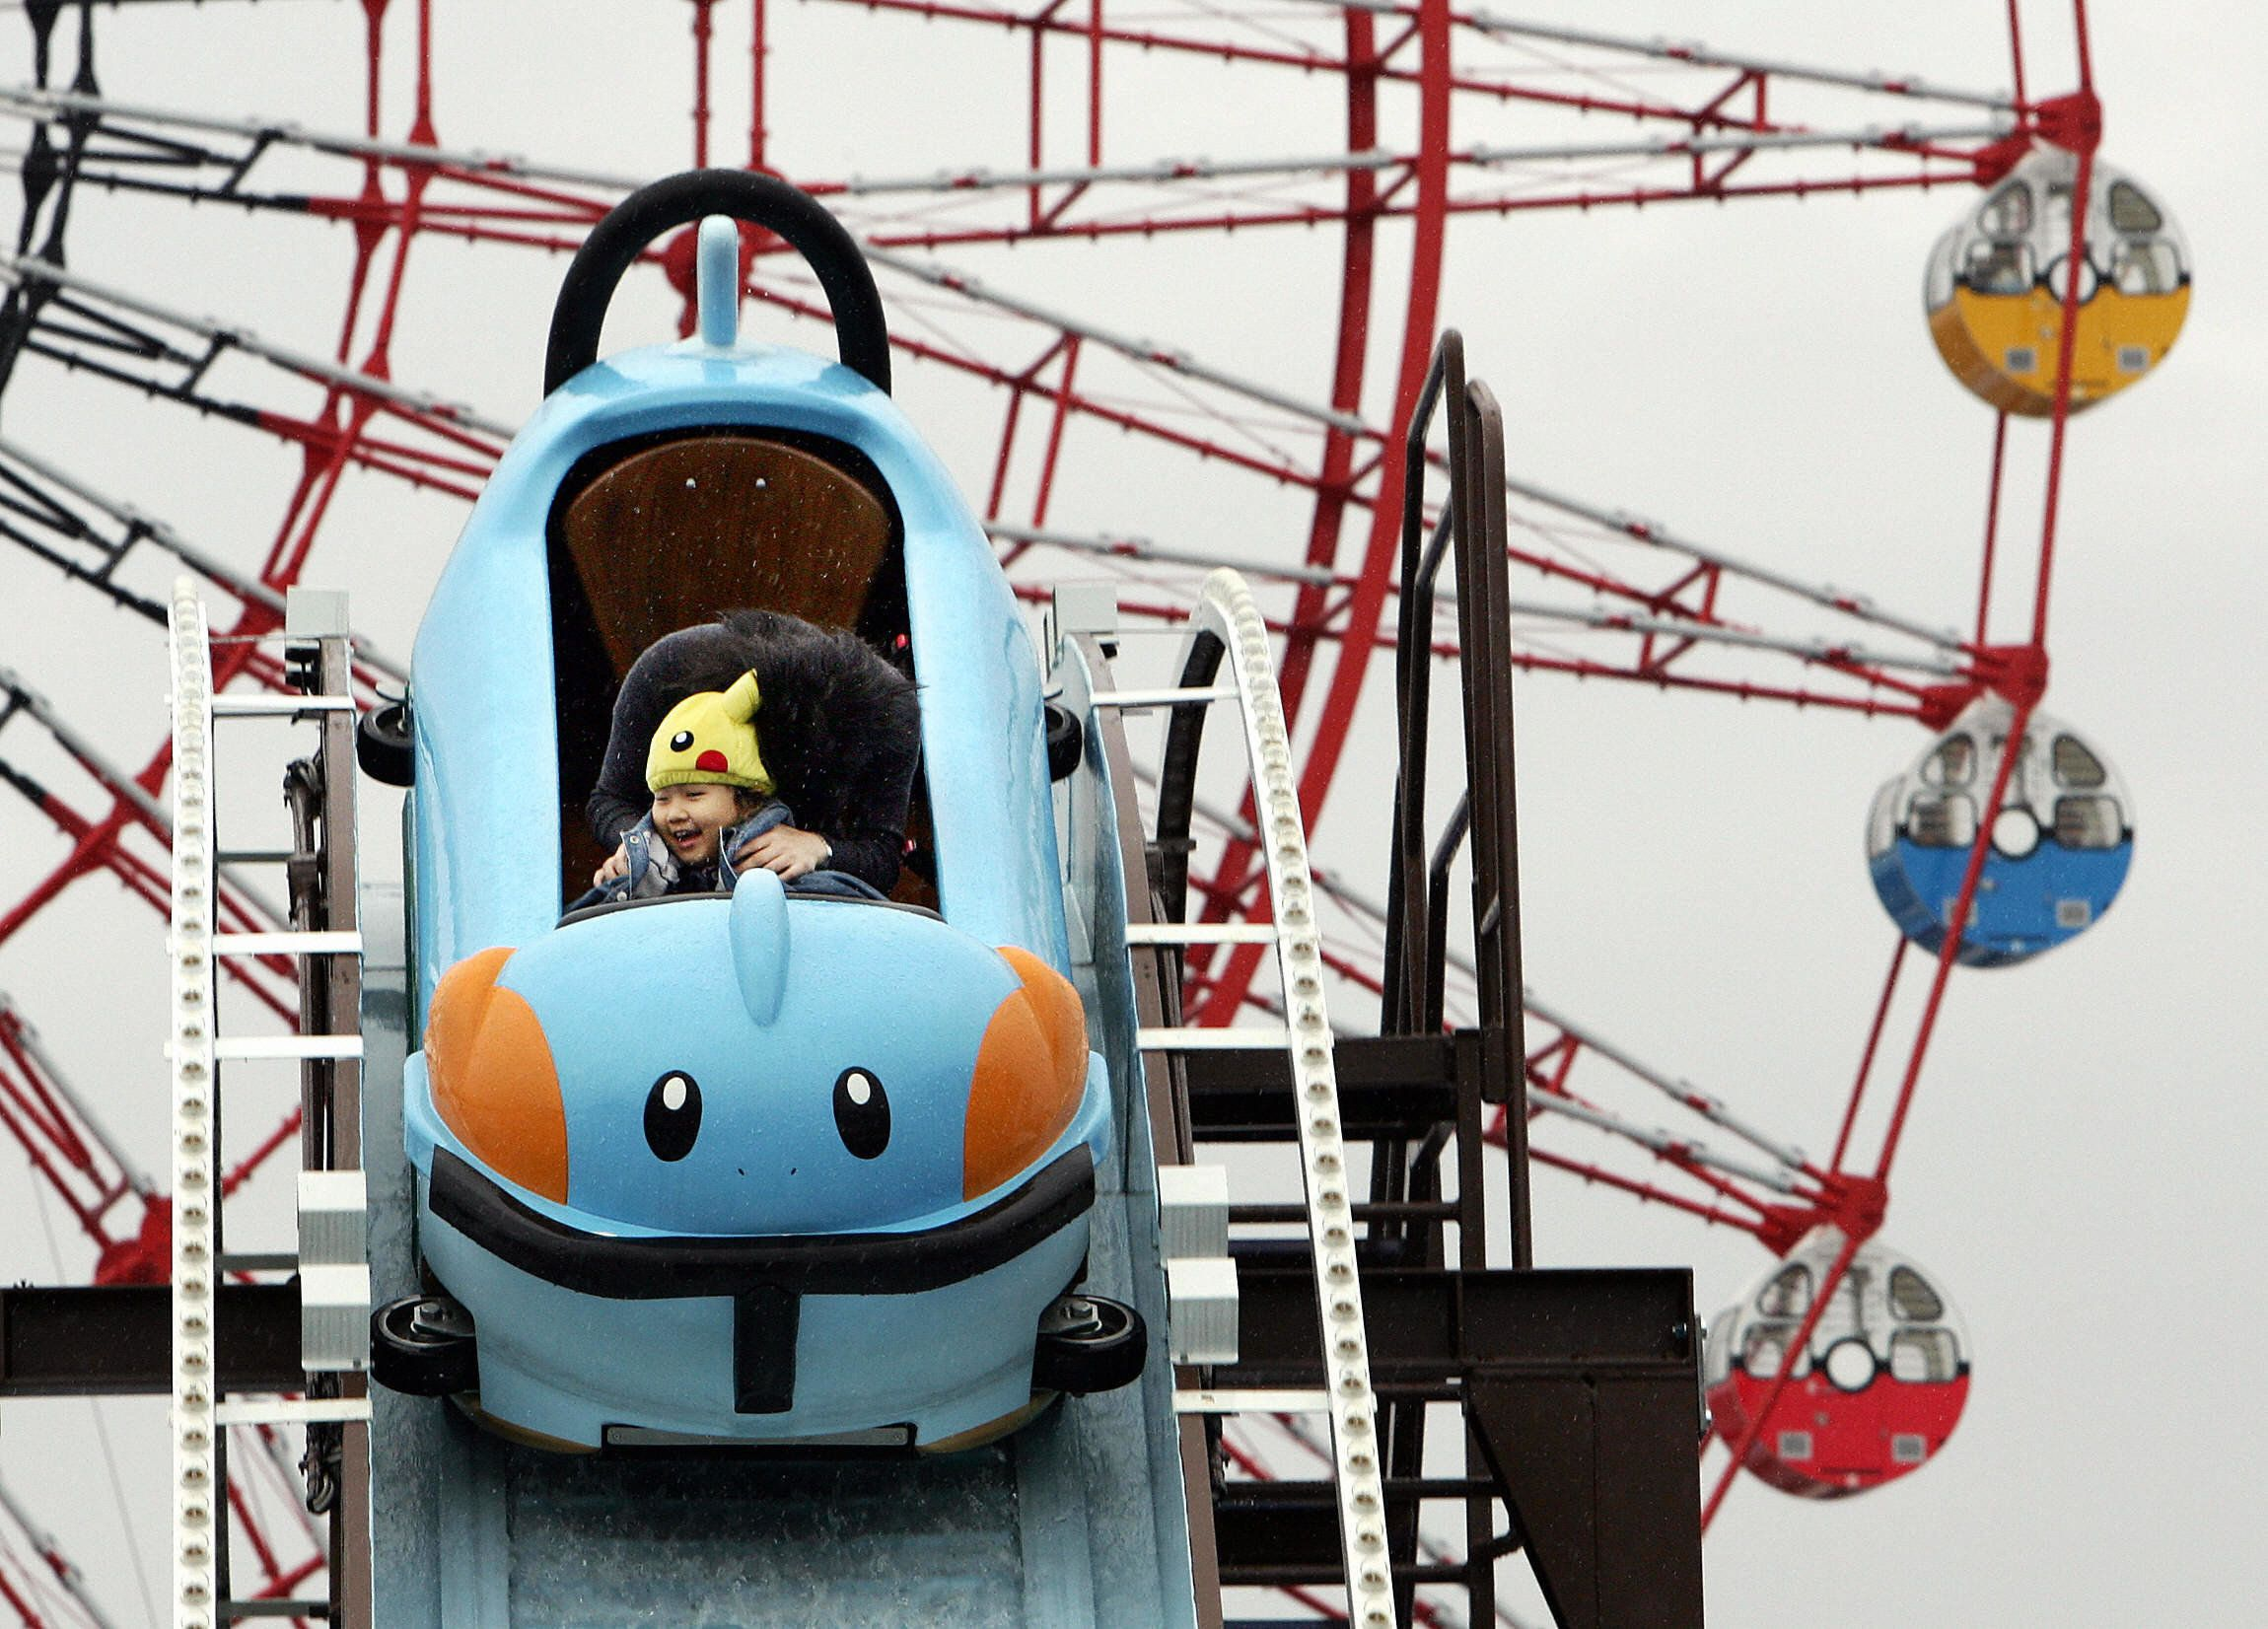 A small child in a Pikachu hat rides a roller coaster that looks like a Mudkip in a 2005 photograph.The Pokemon franchi